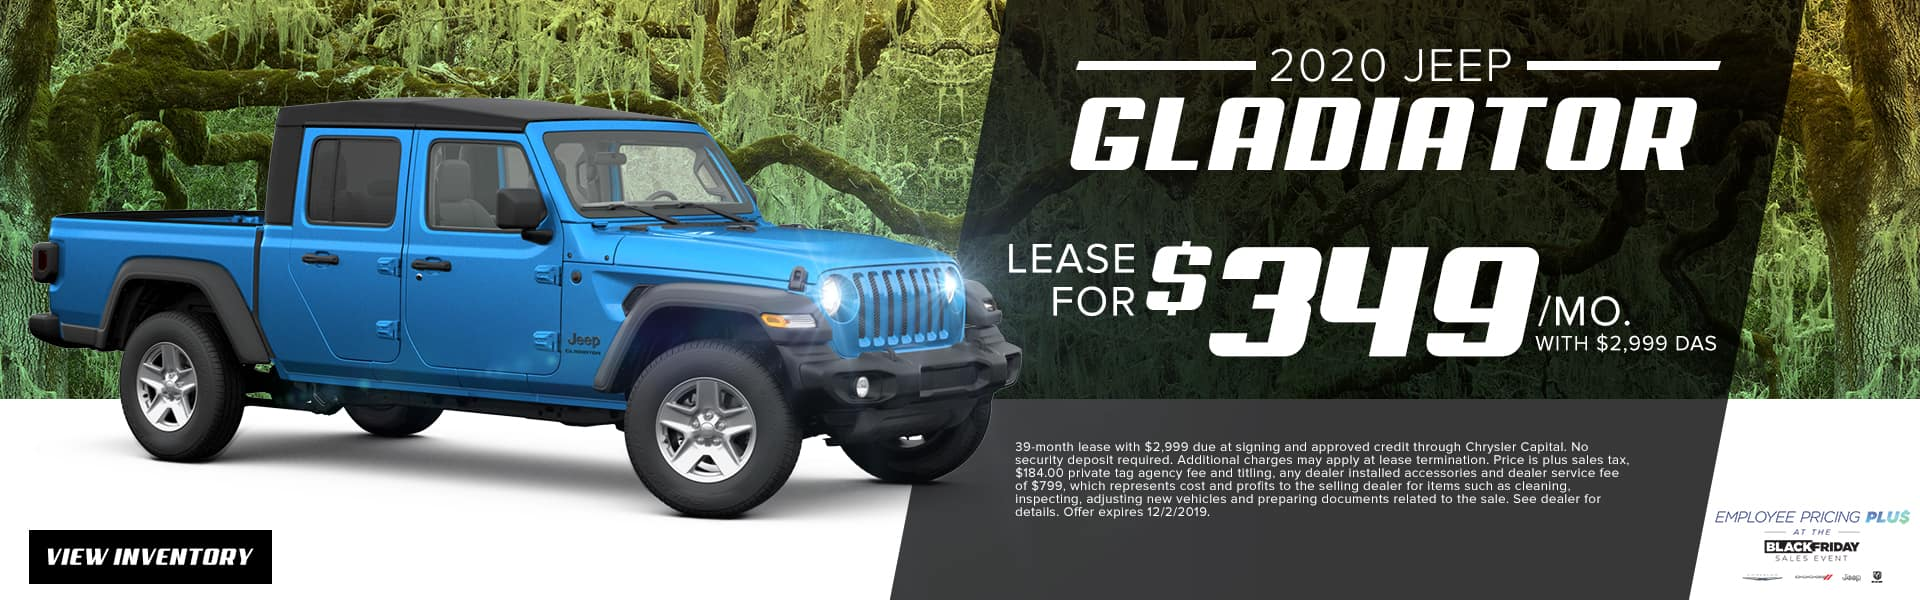 2020 Jeep Gladiator | Lease For $349 Per Month With $2,999 Due At Signing